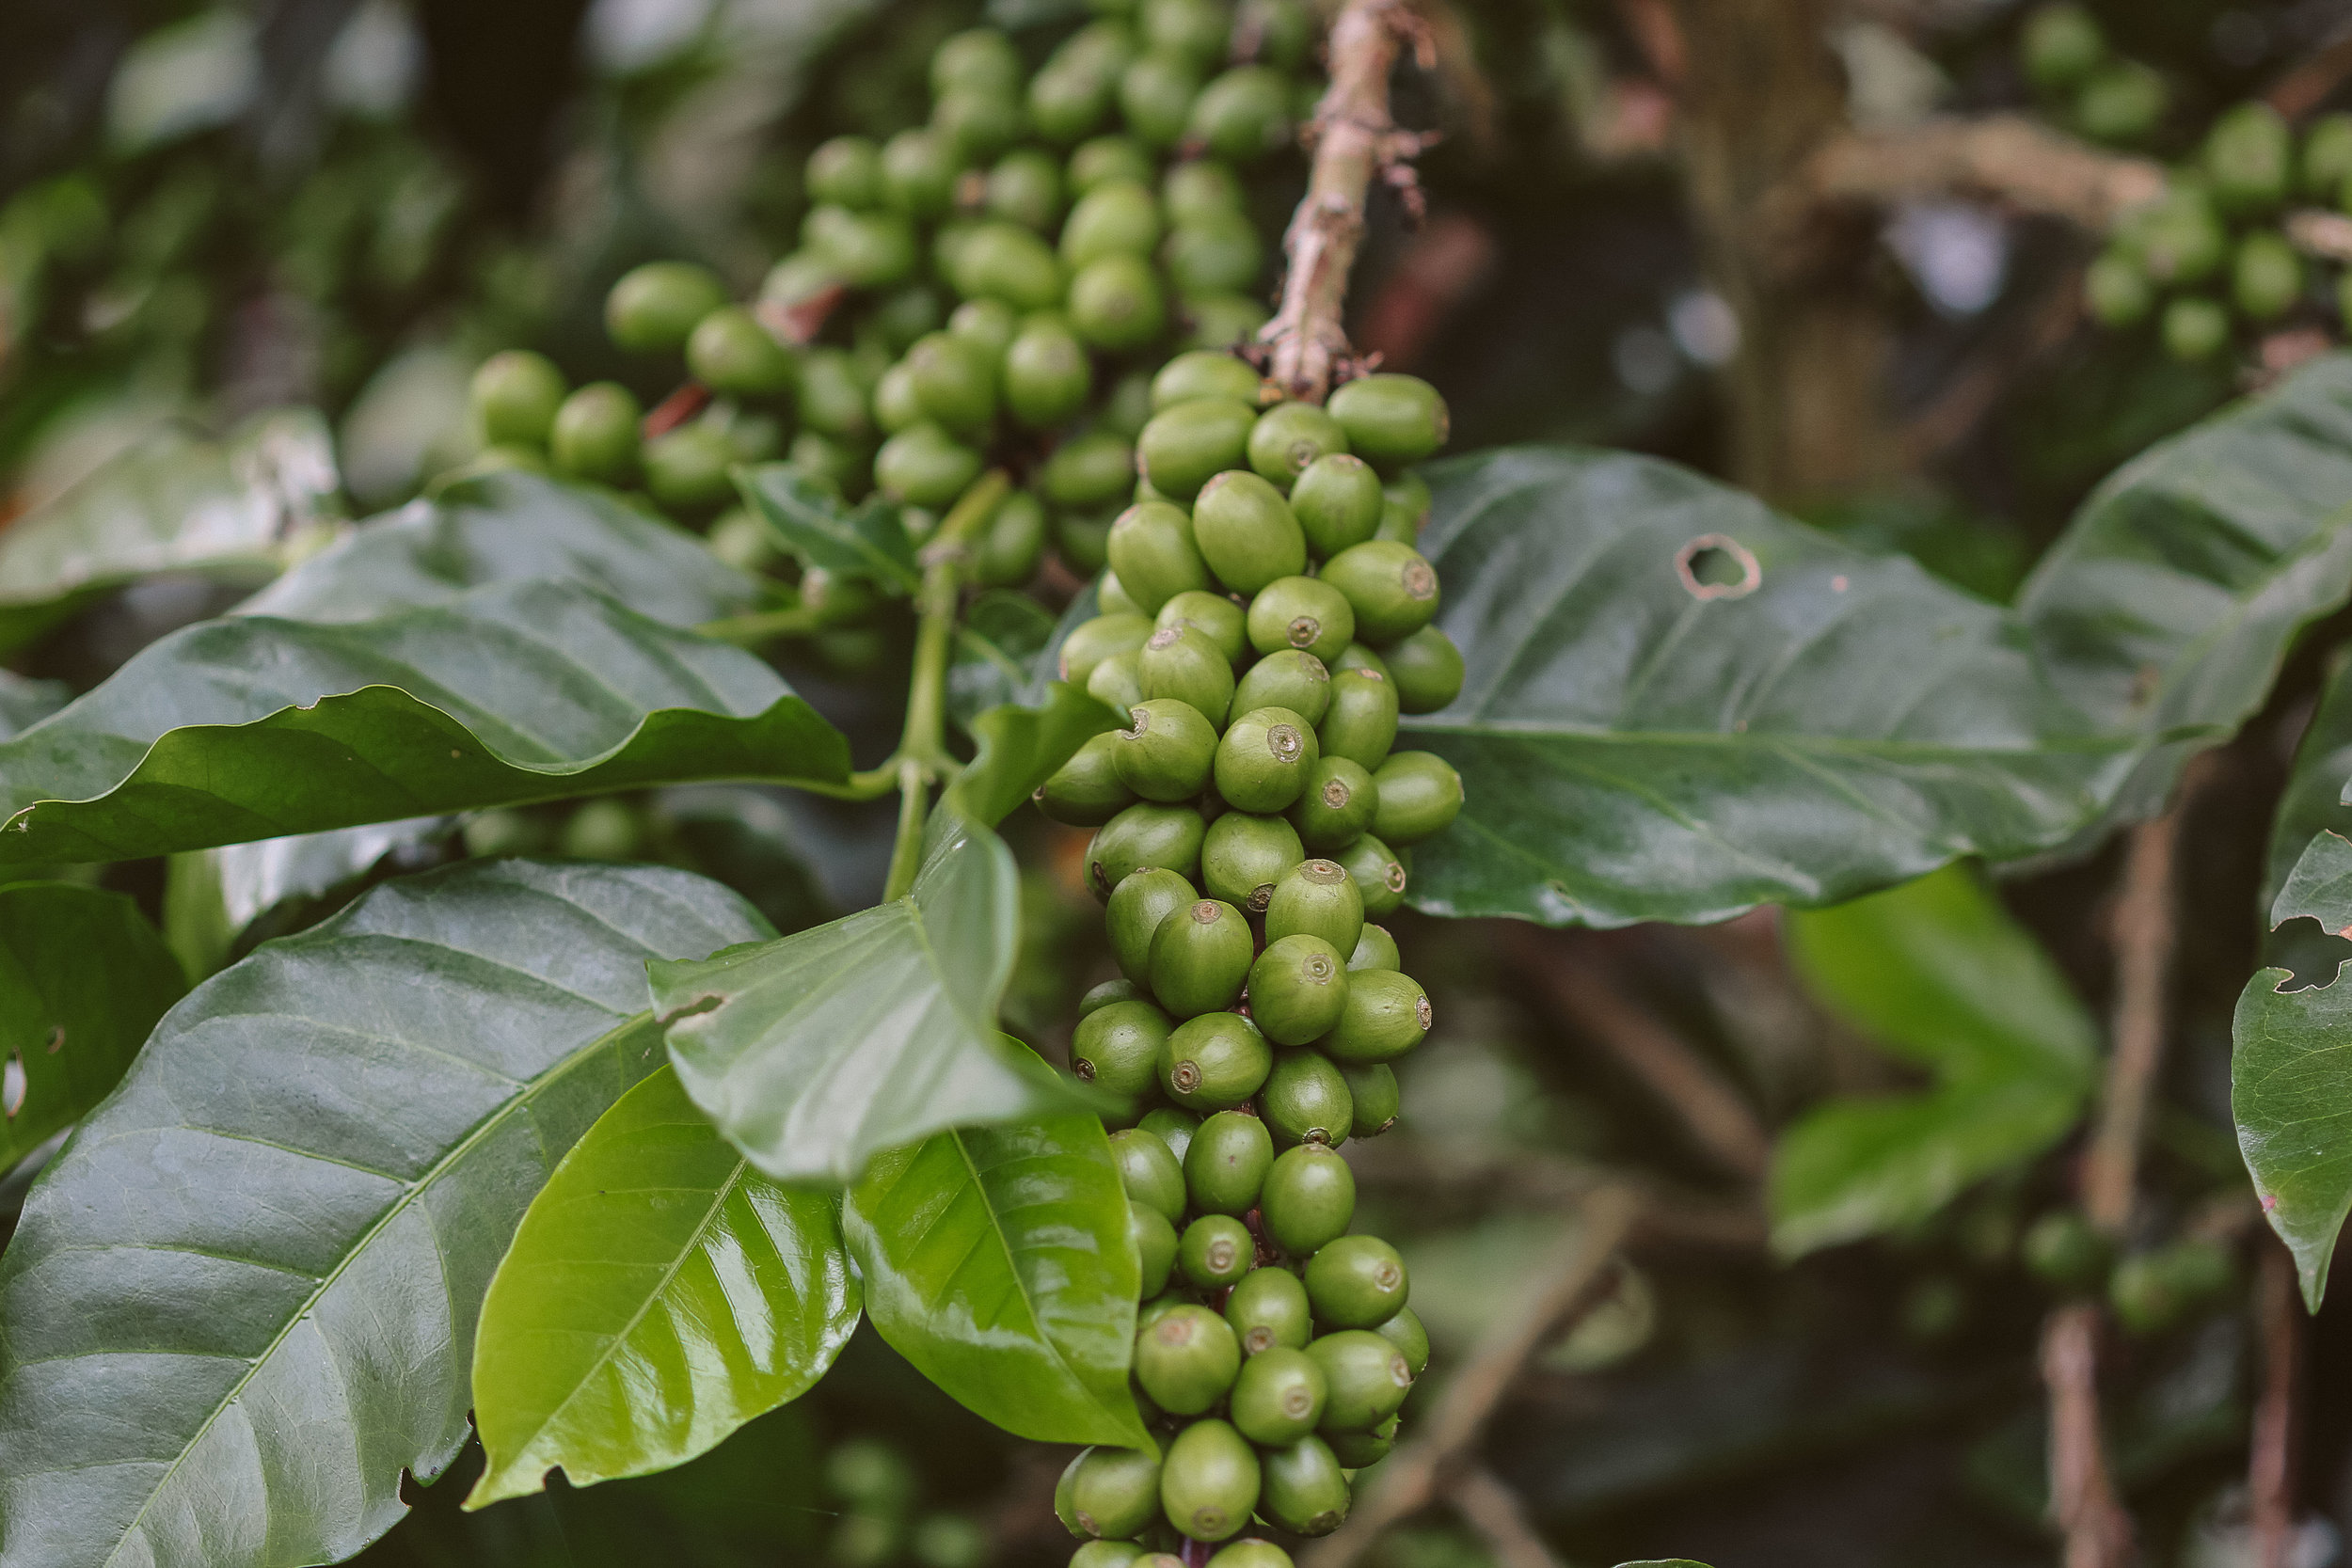 Coffee tree laden with unripened cherries